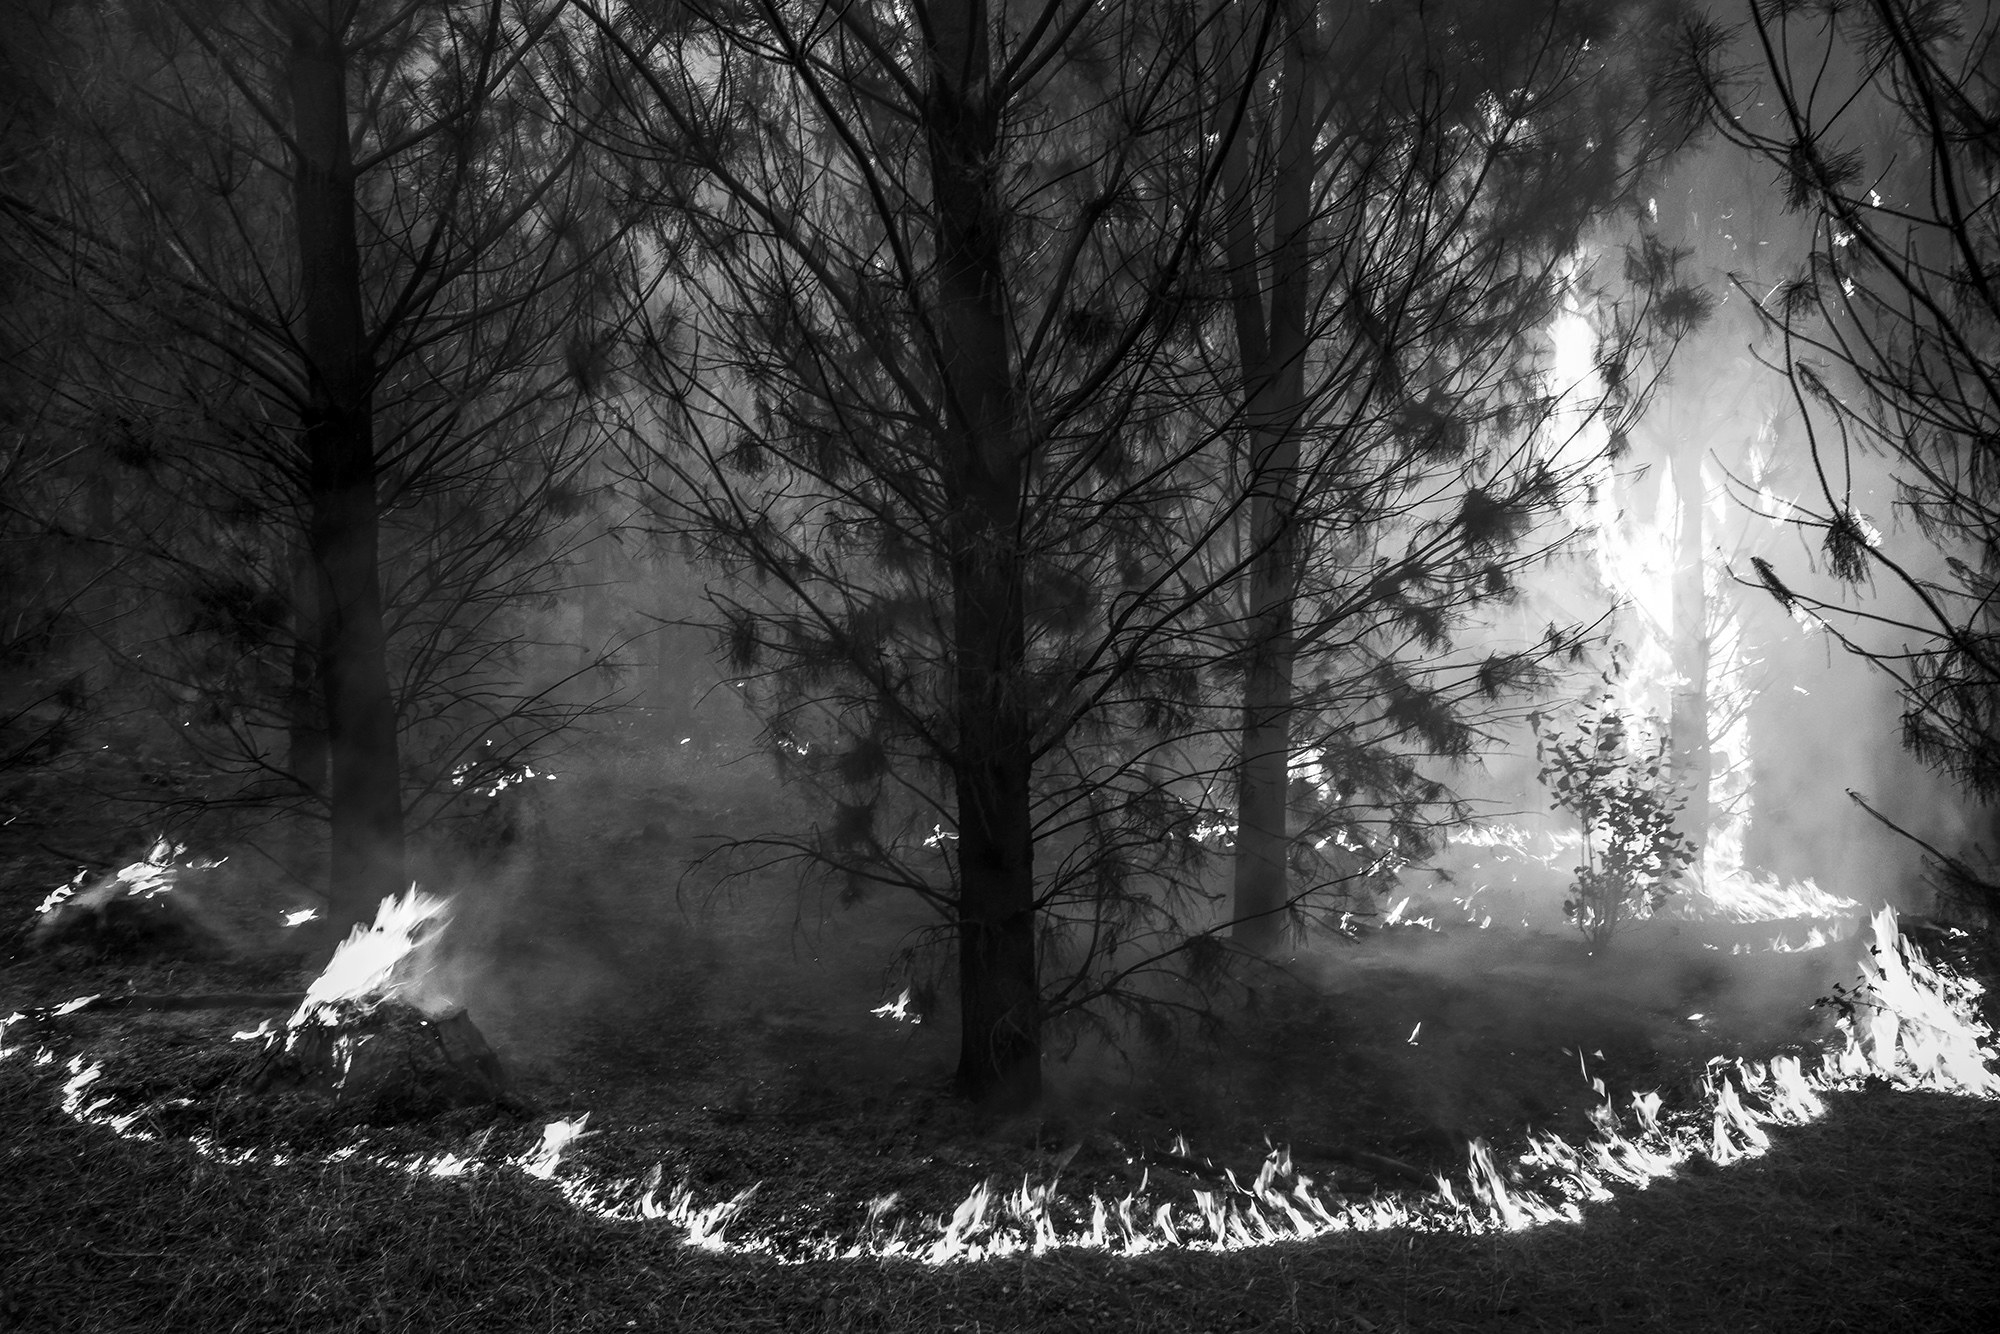 Ring of fire surrounds trees